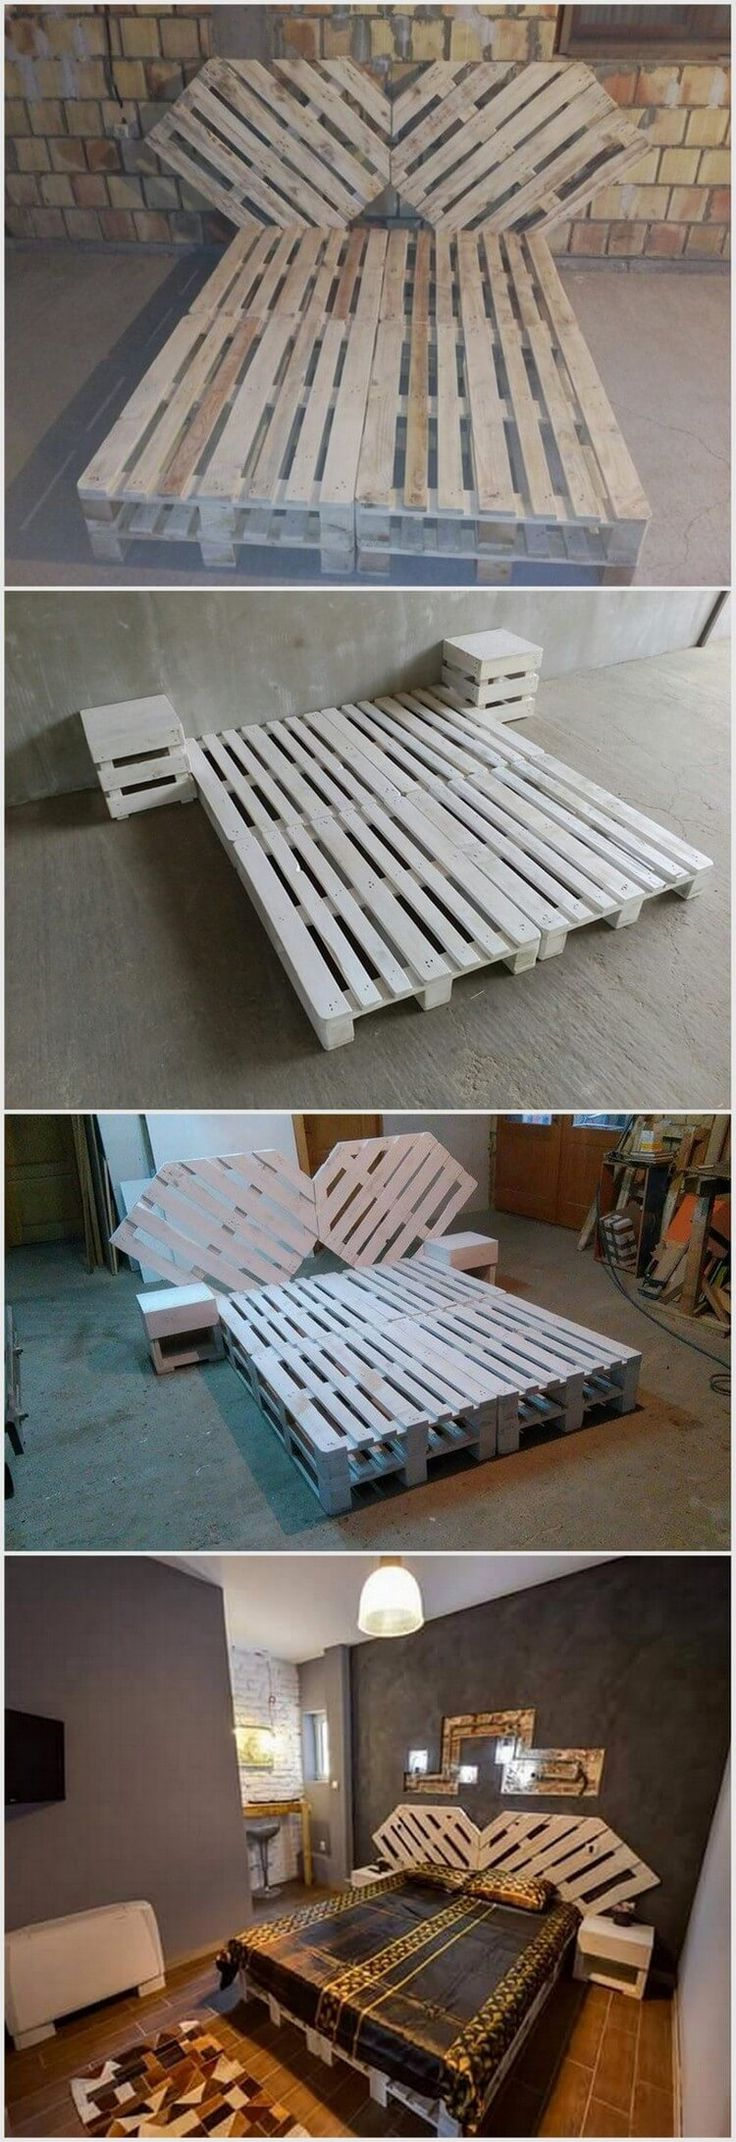 Pallet bed with lights - Best 25 Pallet Beds Ideas Only On Pinterest Palette Bed Pallet Platform Bed And Diy Pallet Bed